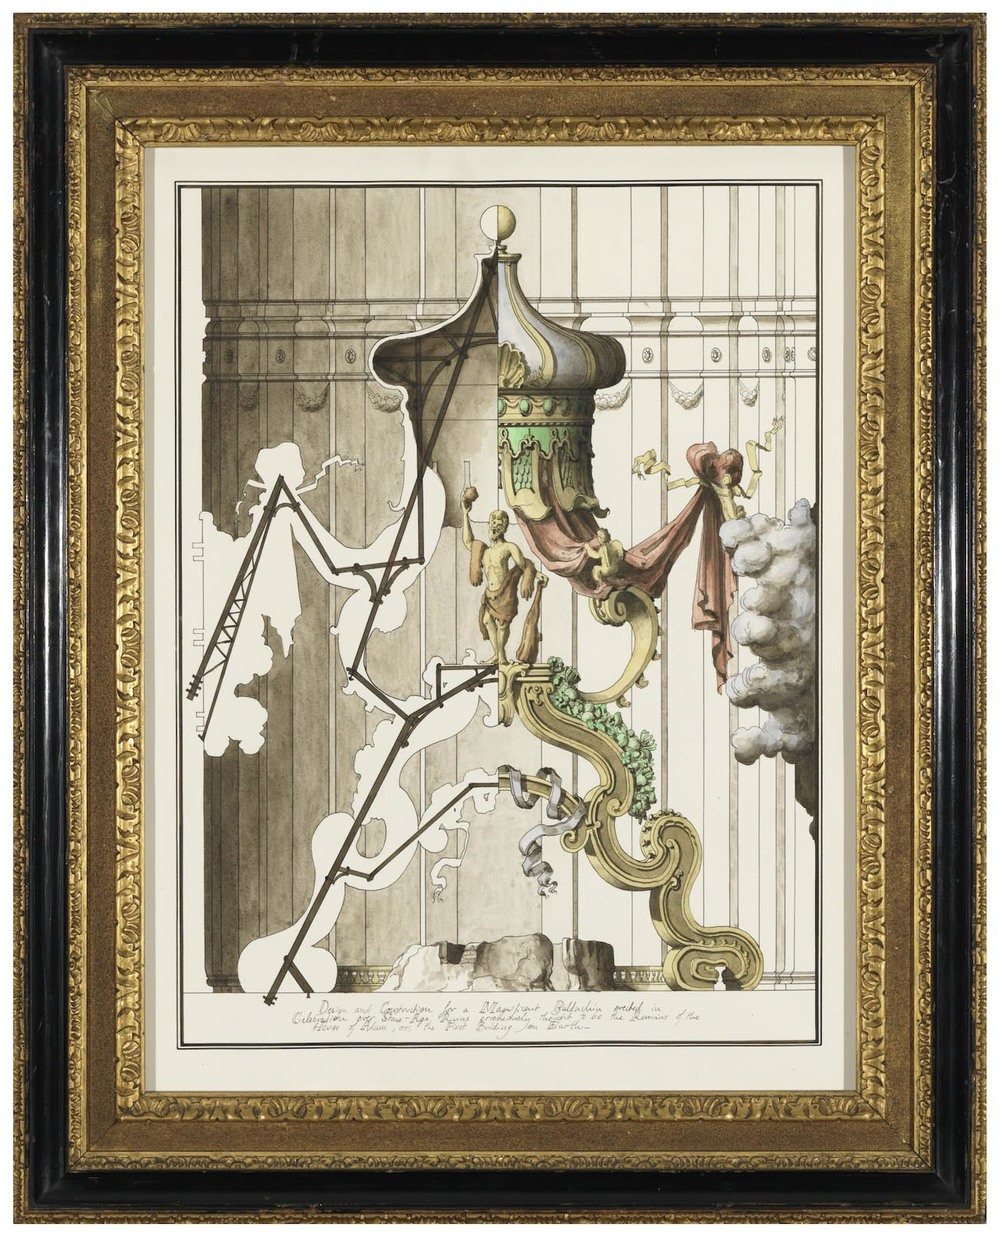 Design and Construction for a Magnificent Baldachin erected in celebration over Stone-Age Ruins erroneously thought to be the Remains of the House of Adam, or the First Building on Earth 2013 Ink and watercolour on paper in artist's frame 71 x 57 cm / 27.9 x 22.4 in